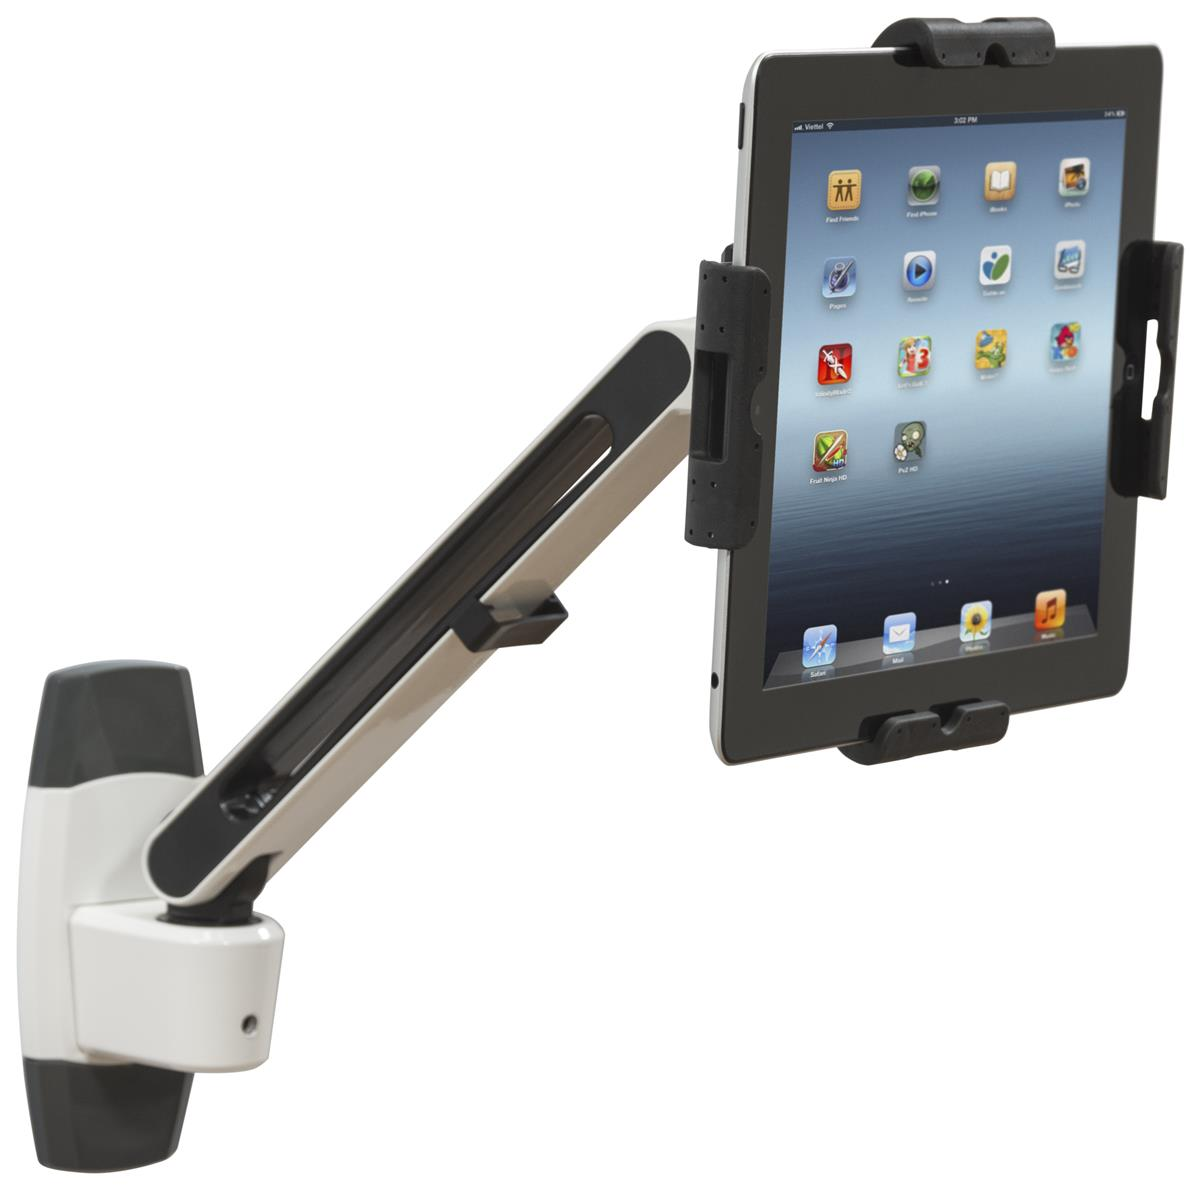 Articulating Tablet Wall Mount Anti Theft IPad Holder